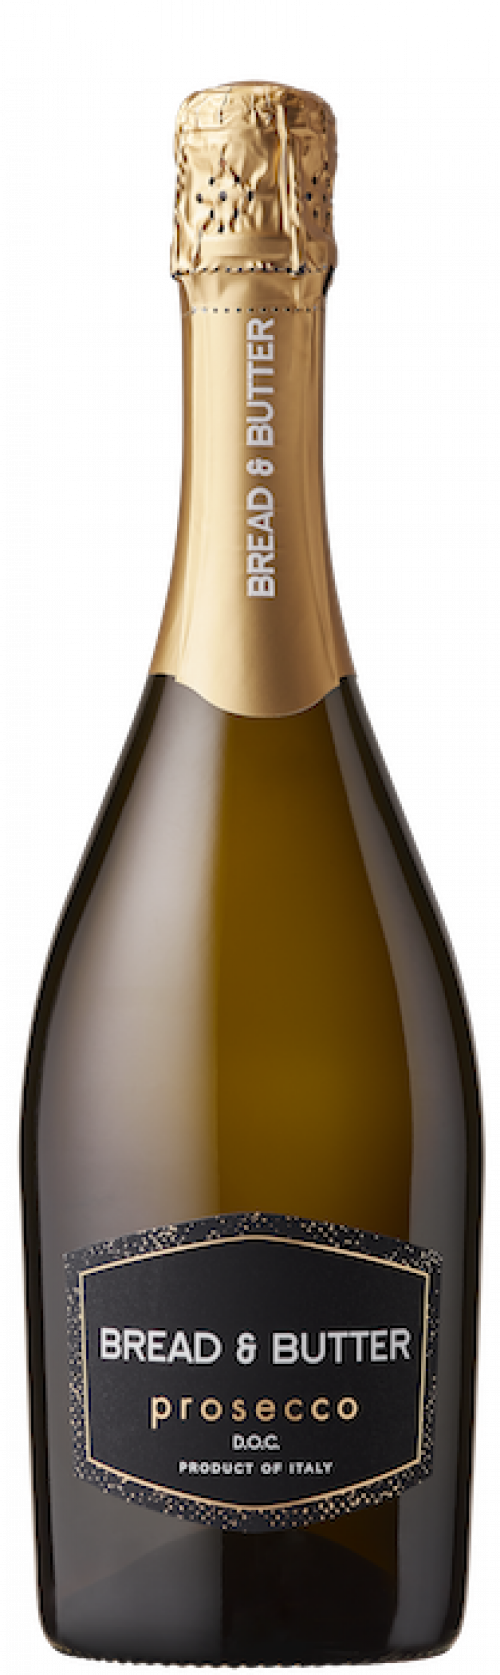 Bread & Butter Prosecco Extra Dry D.O.C. 750ml NV